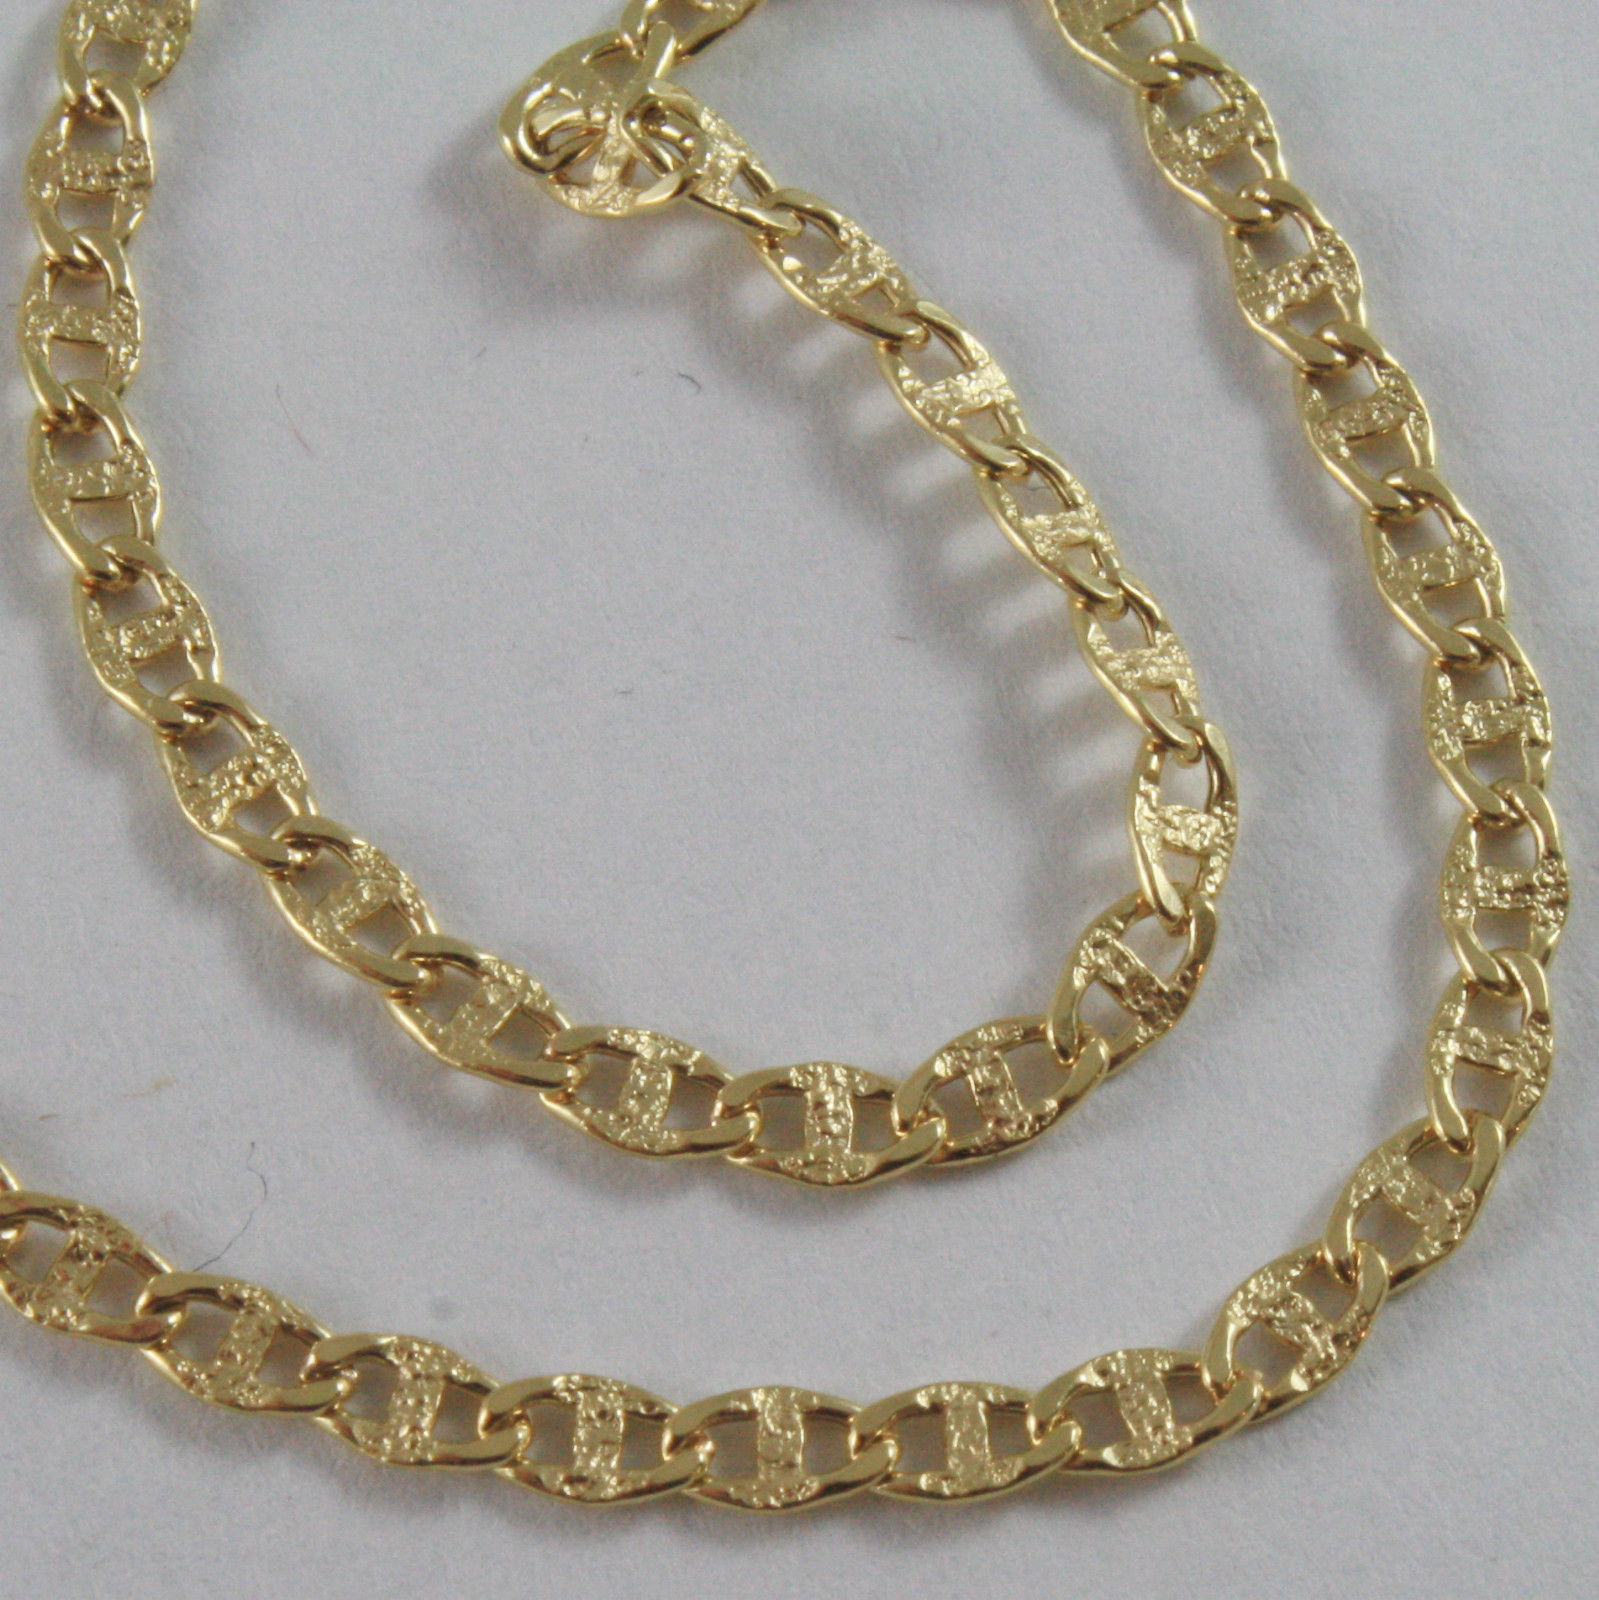 18K YELLOW GOLD CHAIN SAILORS NAVY MARINER LINK HAMMERED NECKLACE, MADE IN ITALY